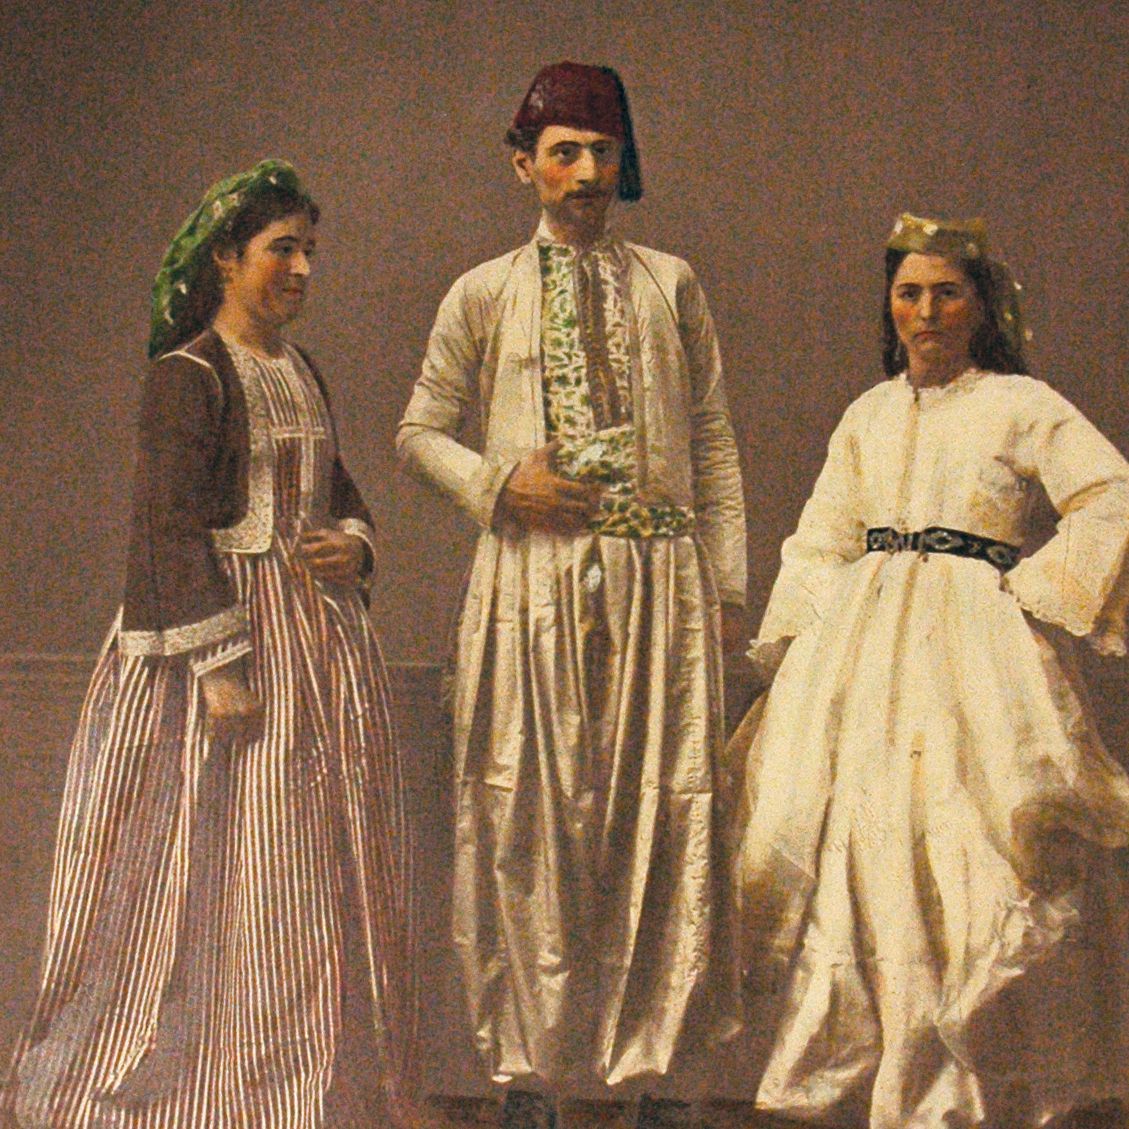 A cultural and economic hub, Aleppo drew people of many ethnicities and religions. Pictured here are (from left to right) a Christian man, a Muslim woman and a Christian woman, all from Bayreuth.